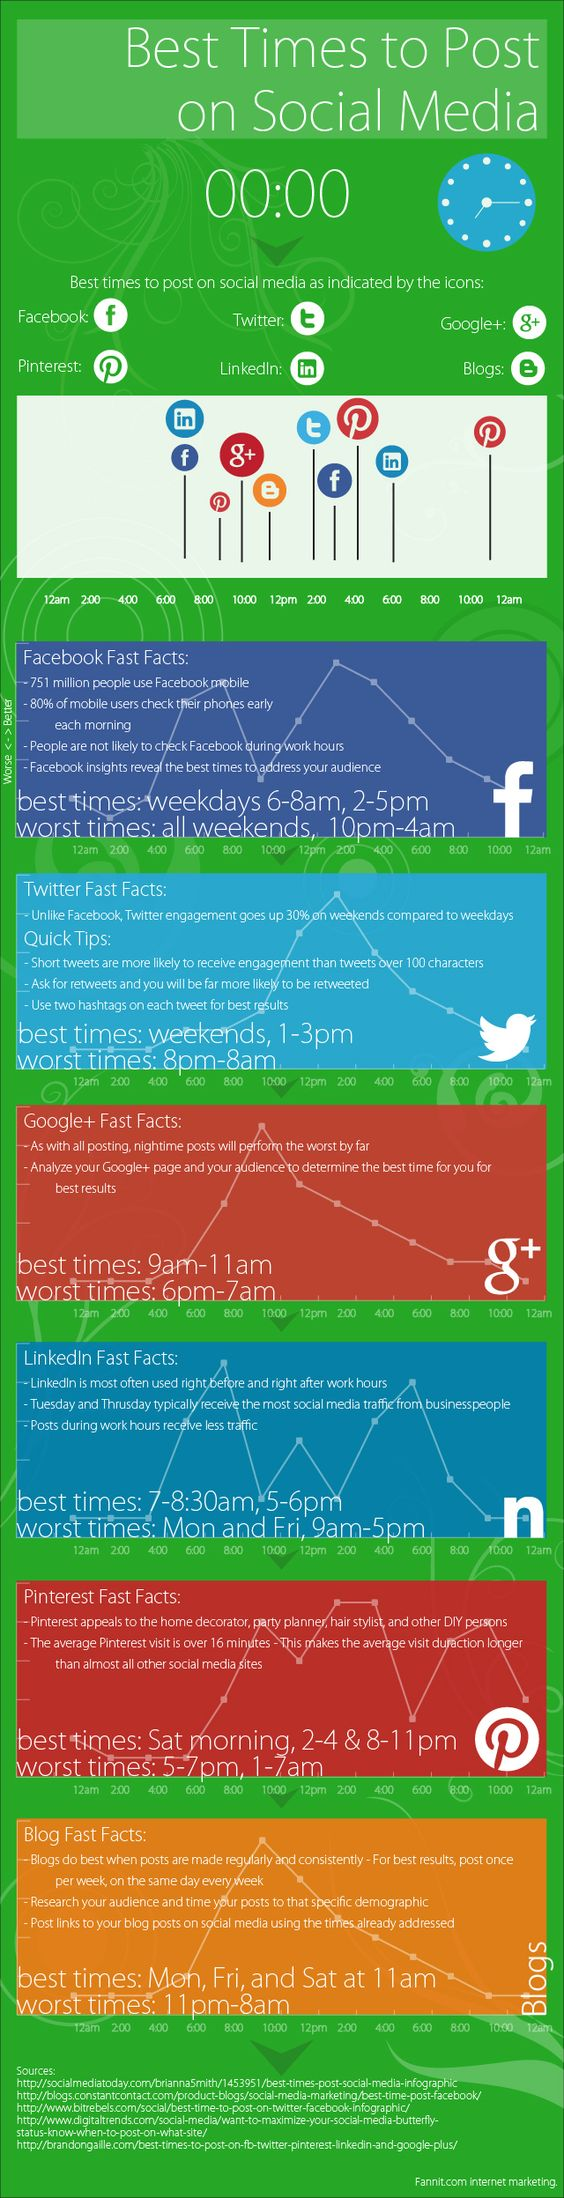 The Best Times to Post on Social Media #Infographics — Lightscap3s.com